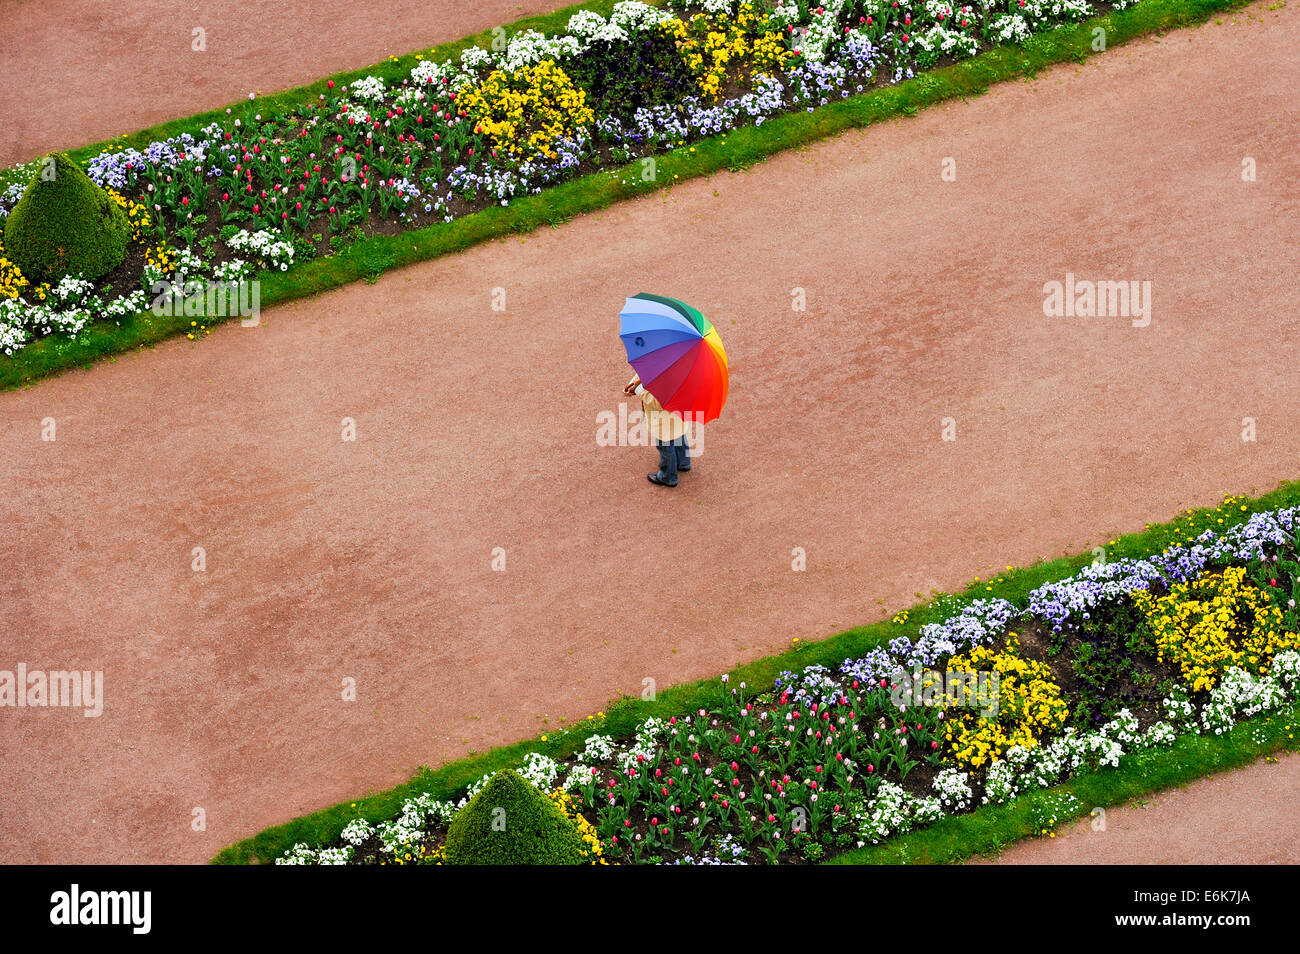 Person with umbrella in rainbow colors on a red gravel path between flower beds in the castle gardens - Stock Image